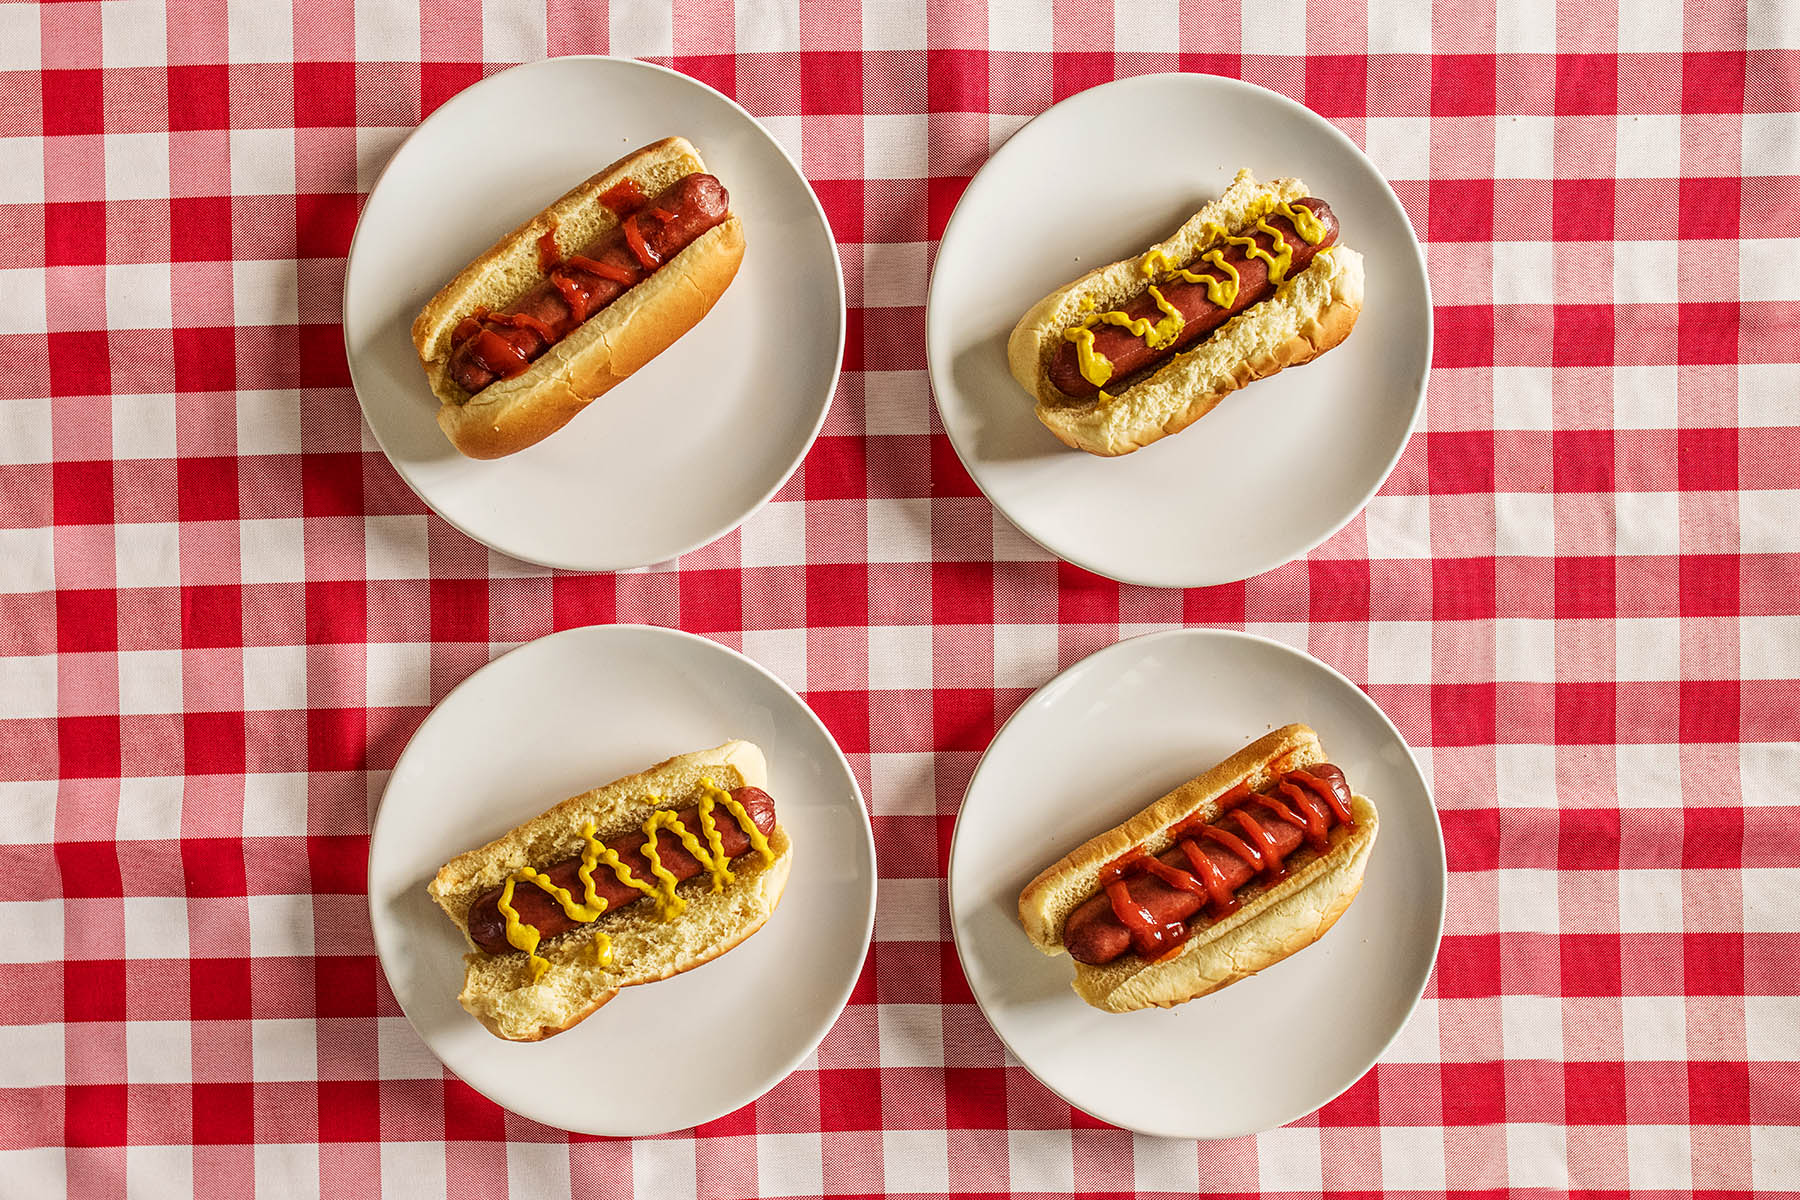 four hot dogs on red and white checked table cloth